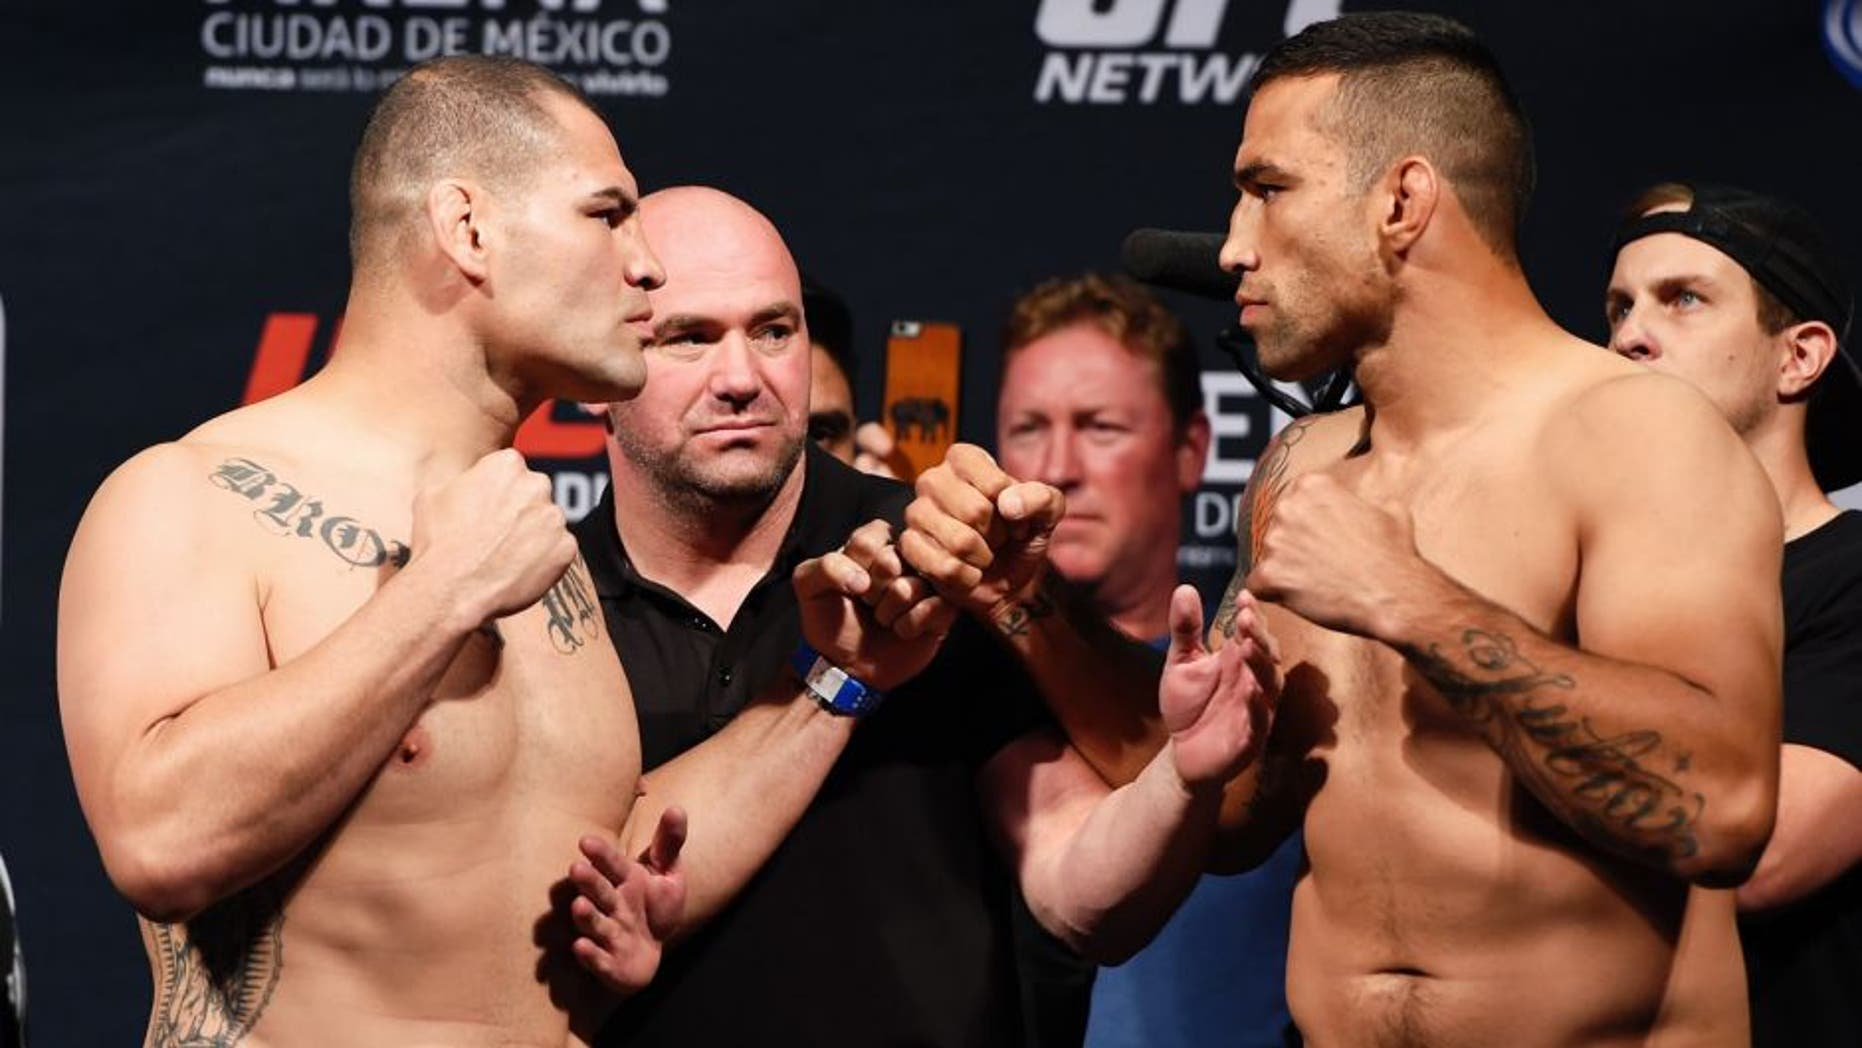 MEXICO CITY, MEXICO - JUNE 12: (L-R) Cain Velasquez of the United States and Fabricio Werdum of Brazil face off during the UFC 188 weigh-in inside the Arena Ciudad de Mexico on June 12, 2015 in Mexico City, Mexico. (Photo by Josh Hedges/Zuffa LLC/Zuffa LLC via Getty Images)